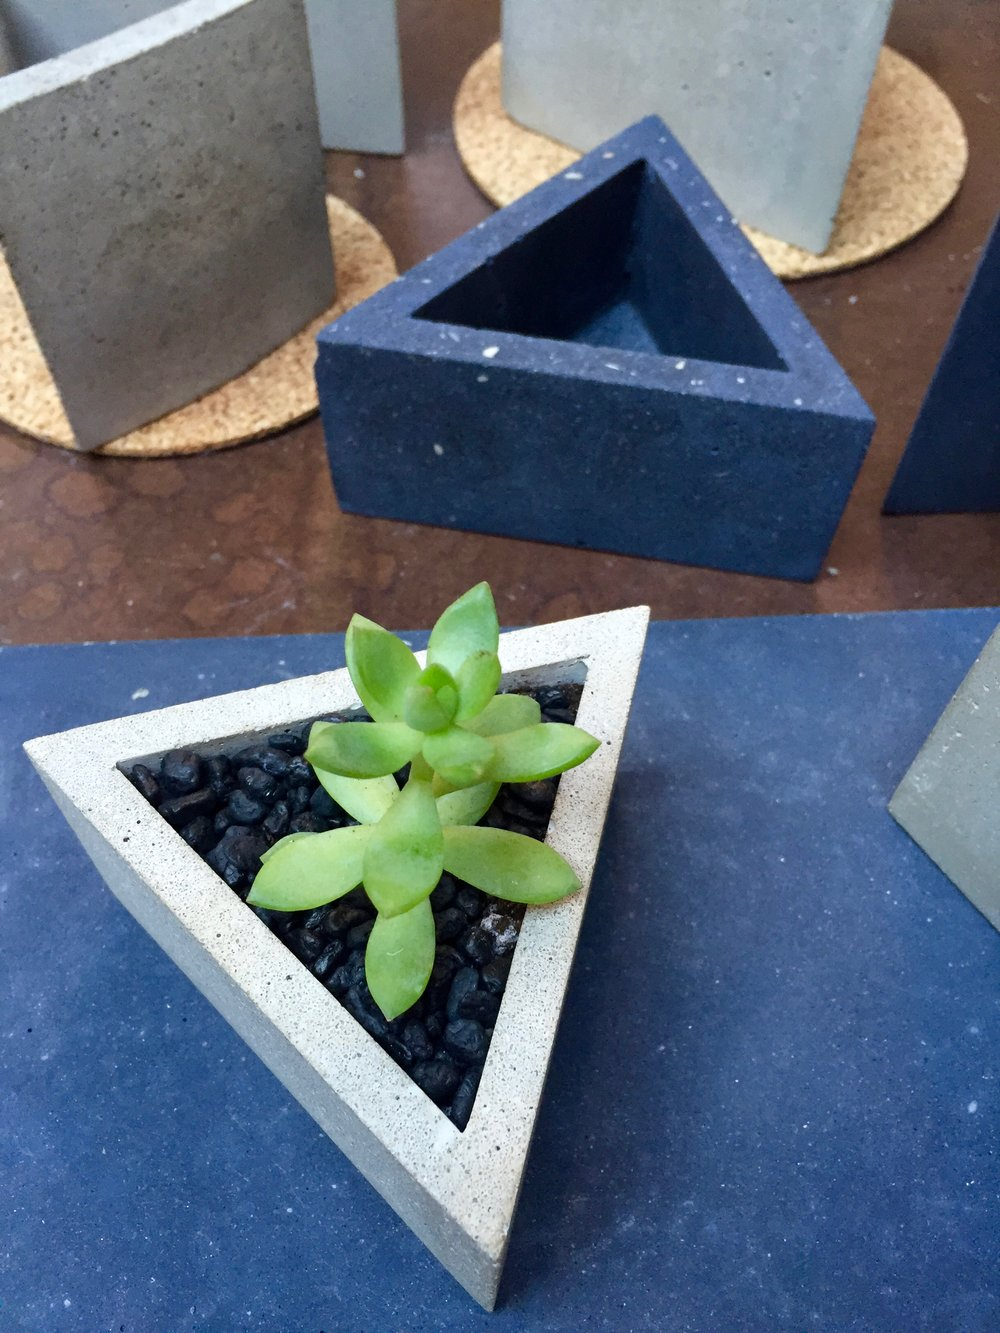 A tender succulent in a masculine, sharp-edged, concrete pot. It reminded me of you, honey.